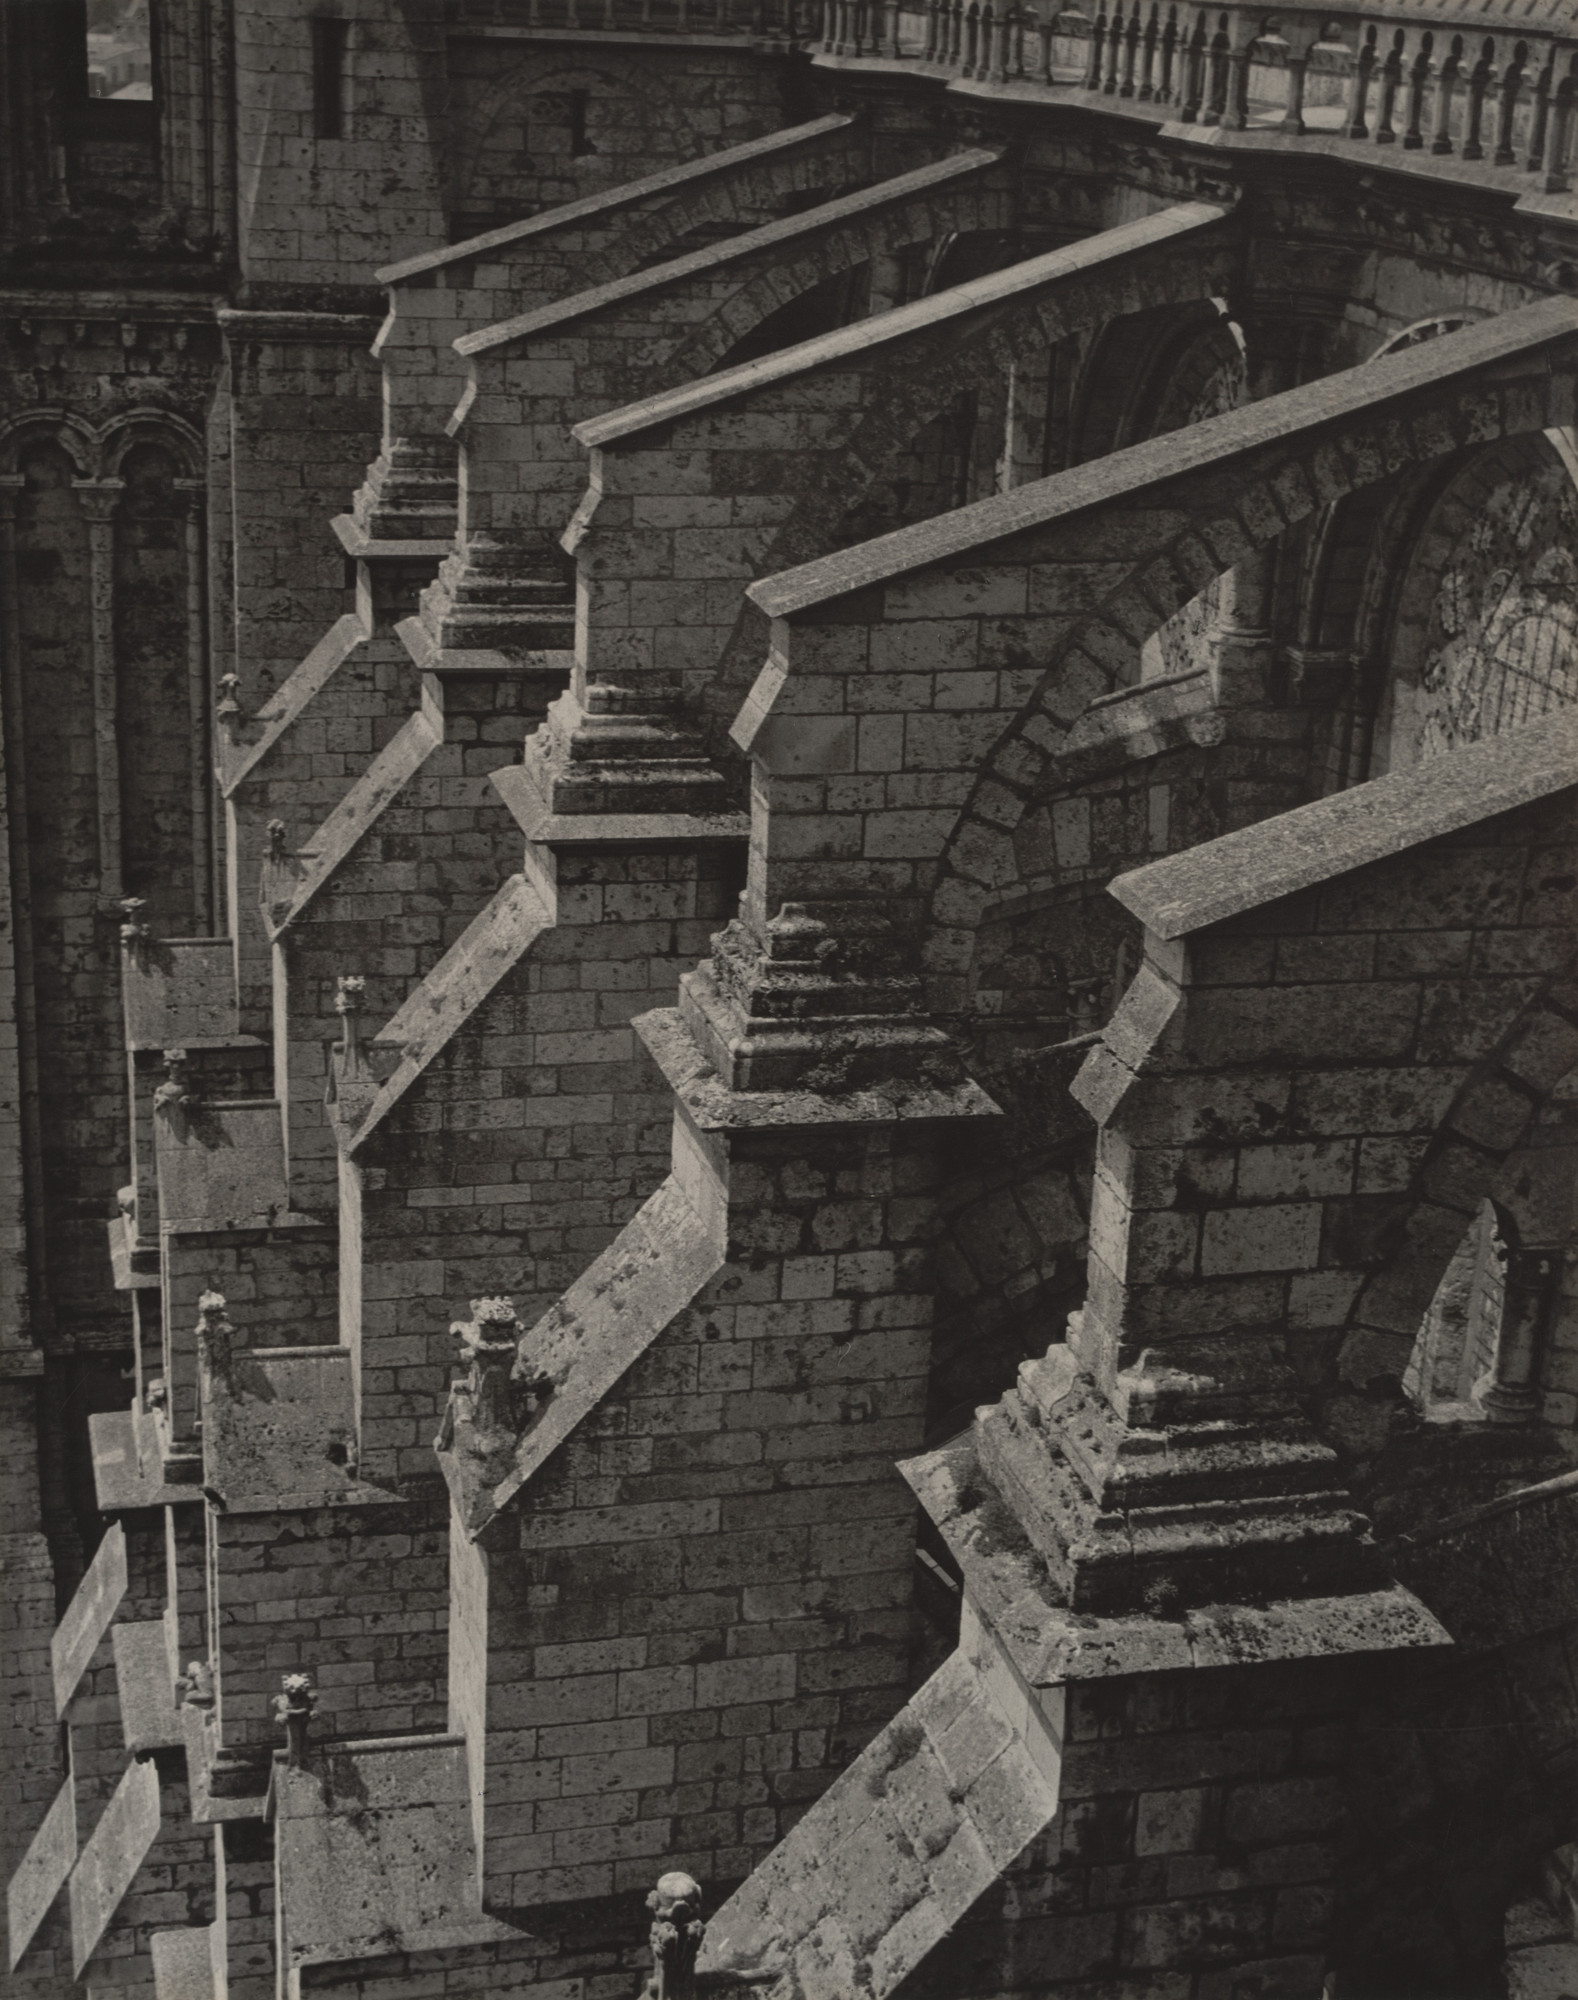 Charles Sheeler. Chartres Cathedral. 1929